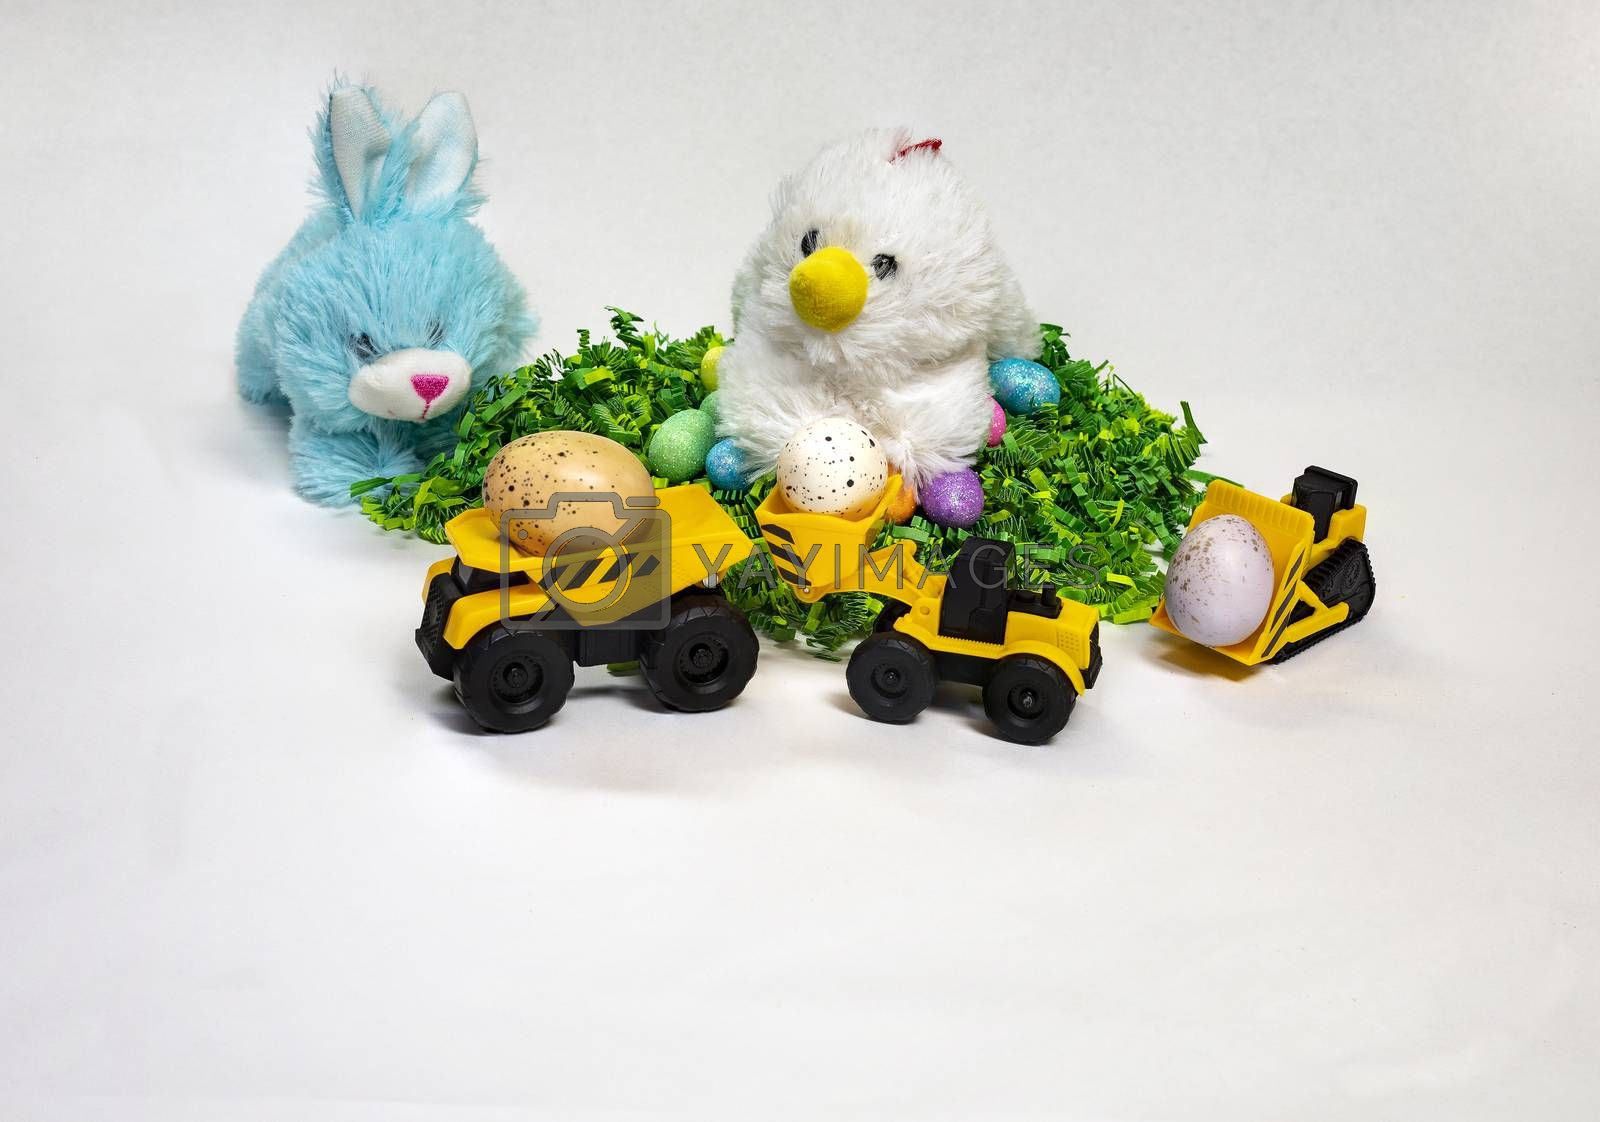 Easter themed photo of stufed bunny and hen with decorated Easter eggs and a child's toy construction vehicles.